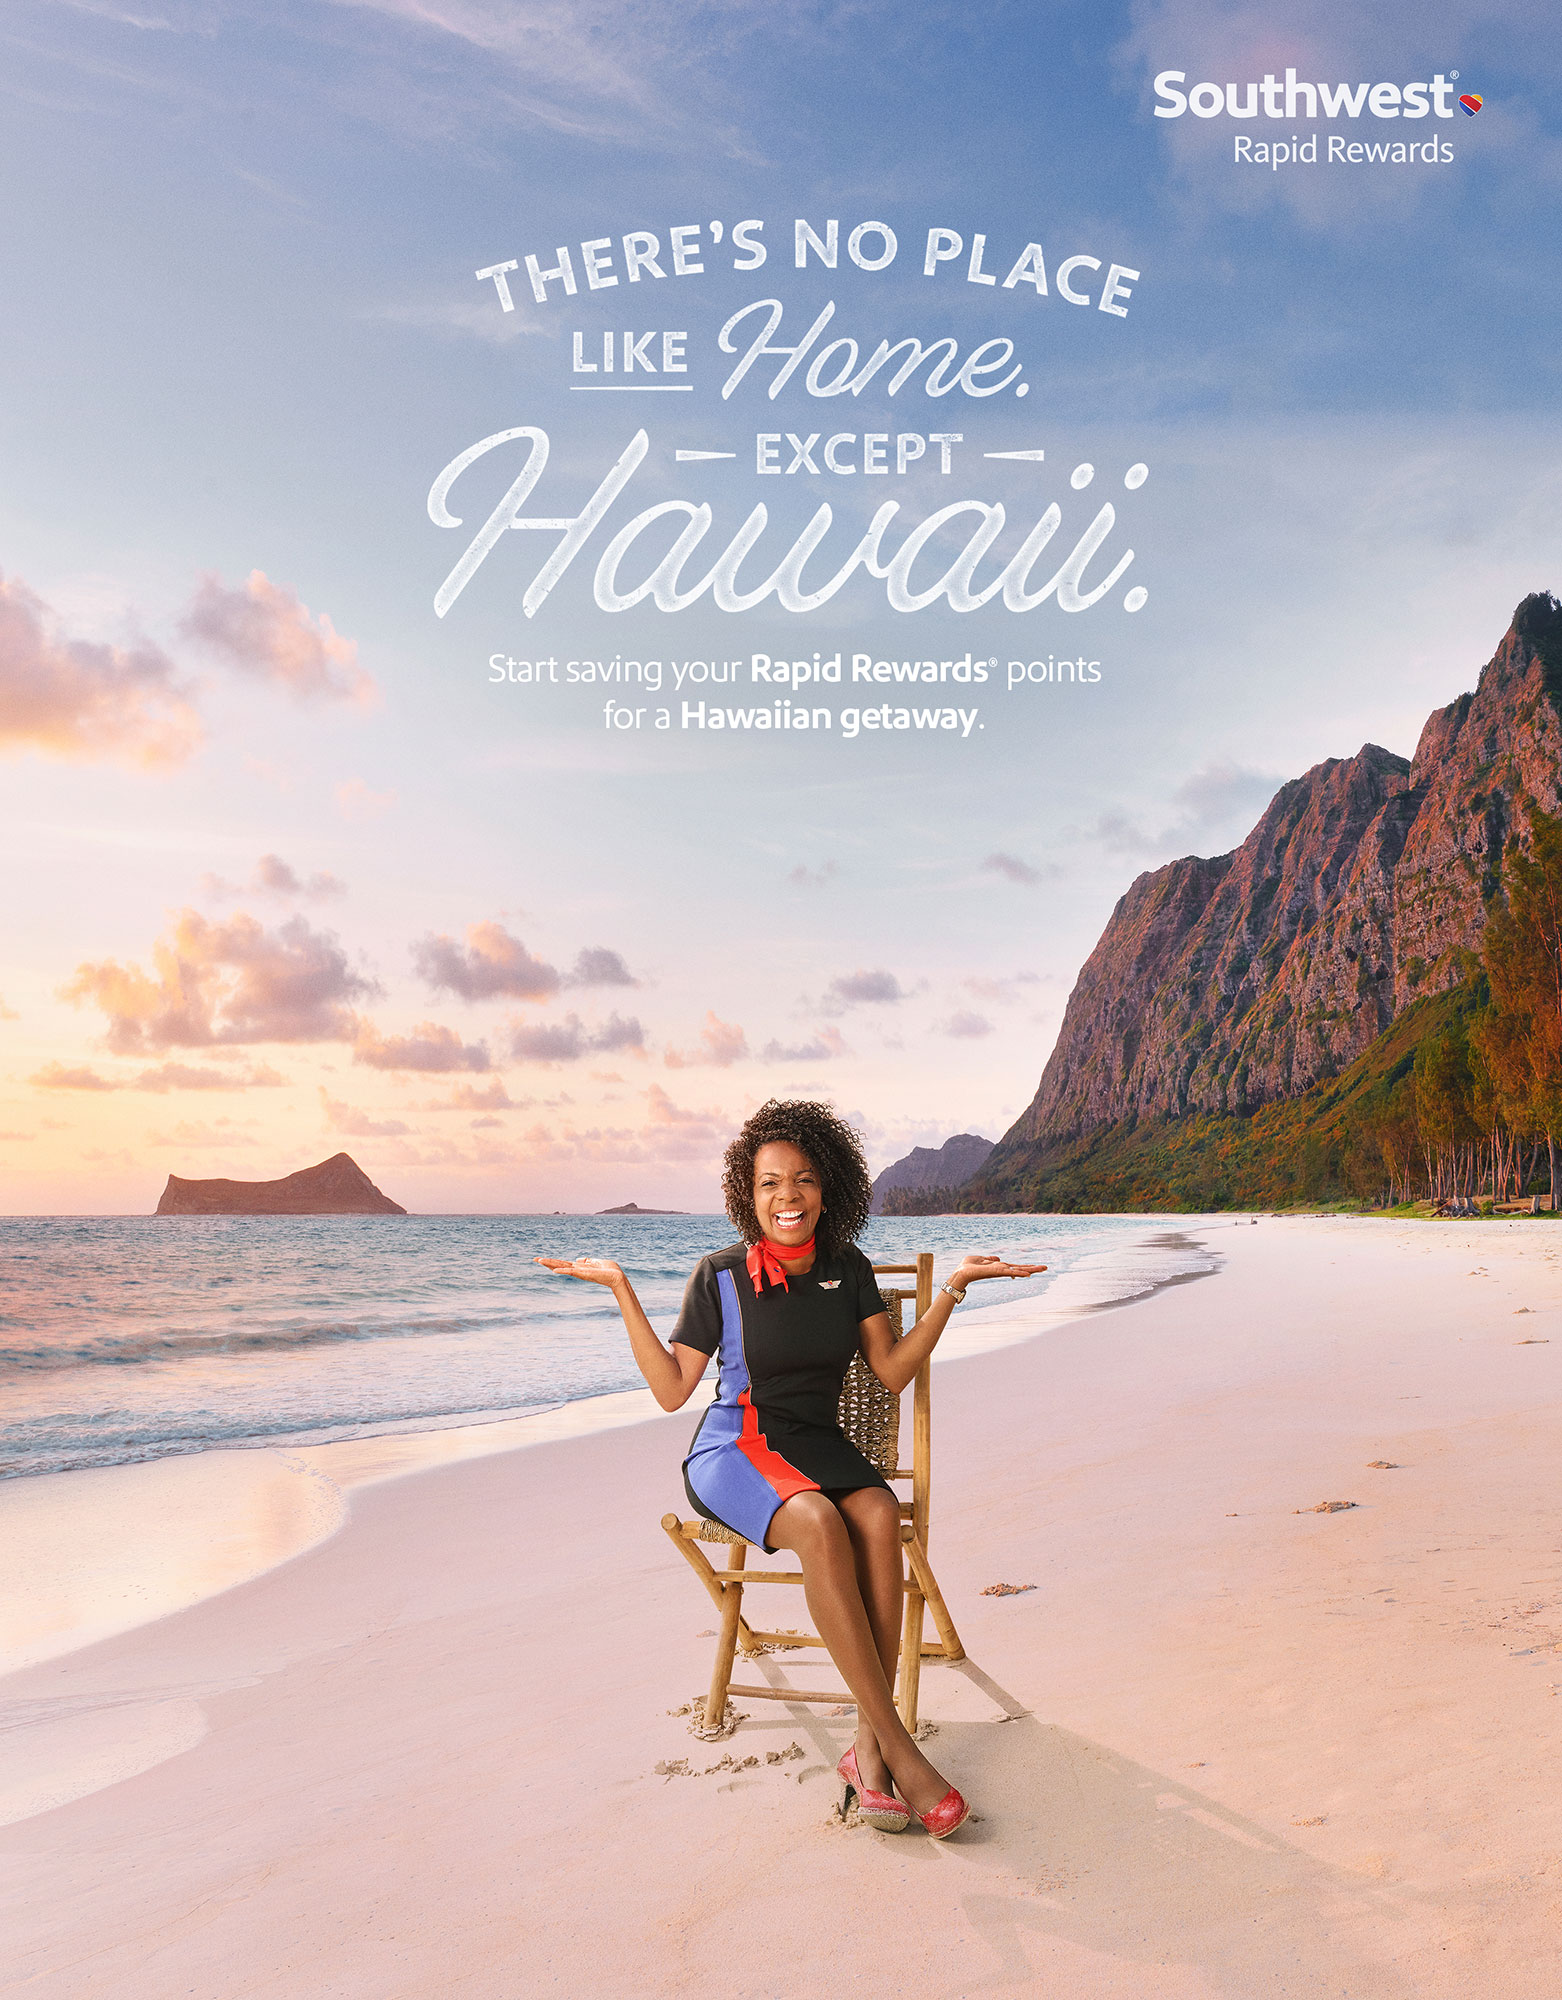 HAWAII_PRINT_RJ_0001_Beach-No-place-like-home